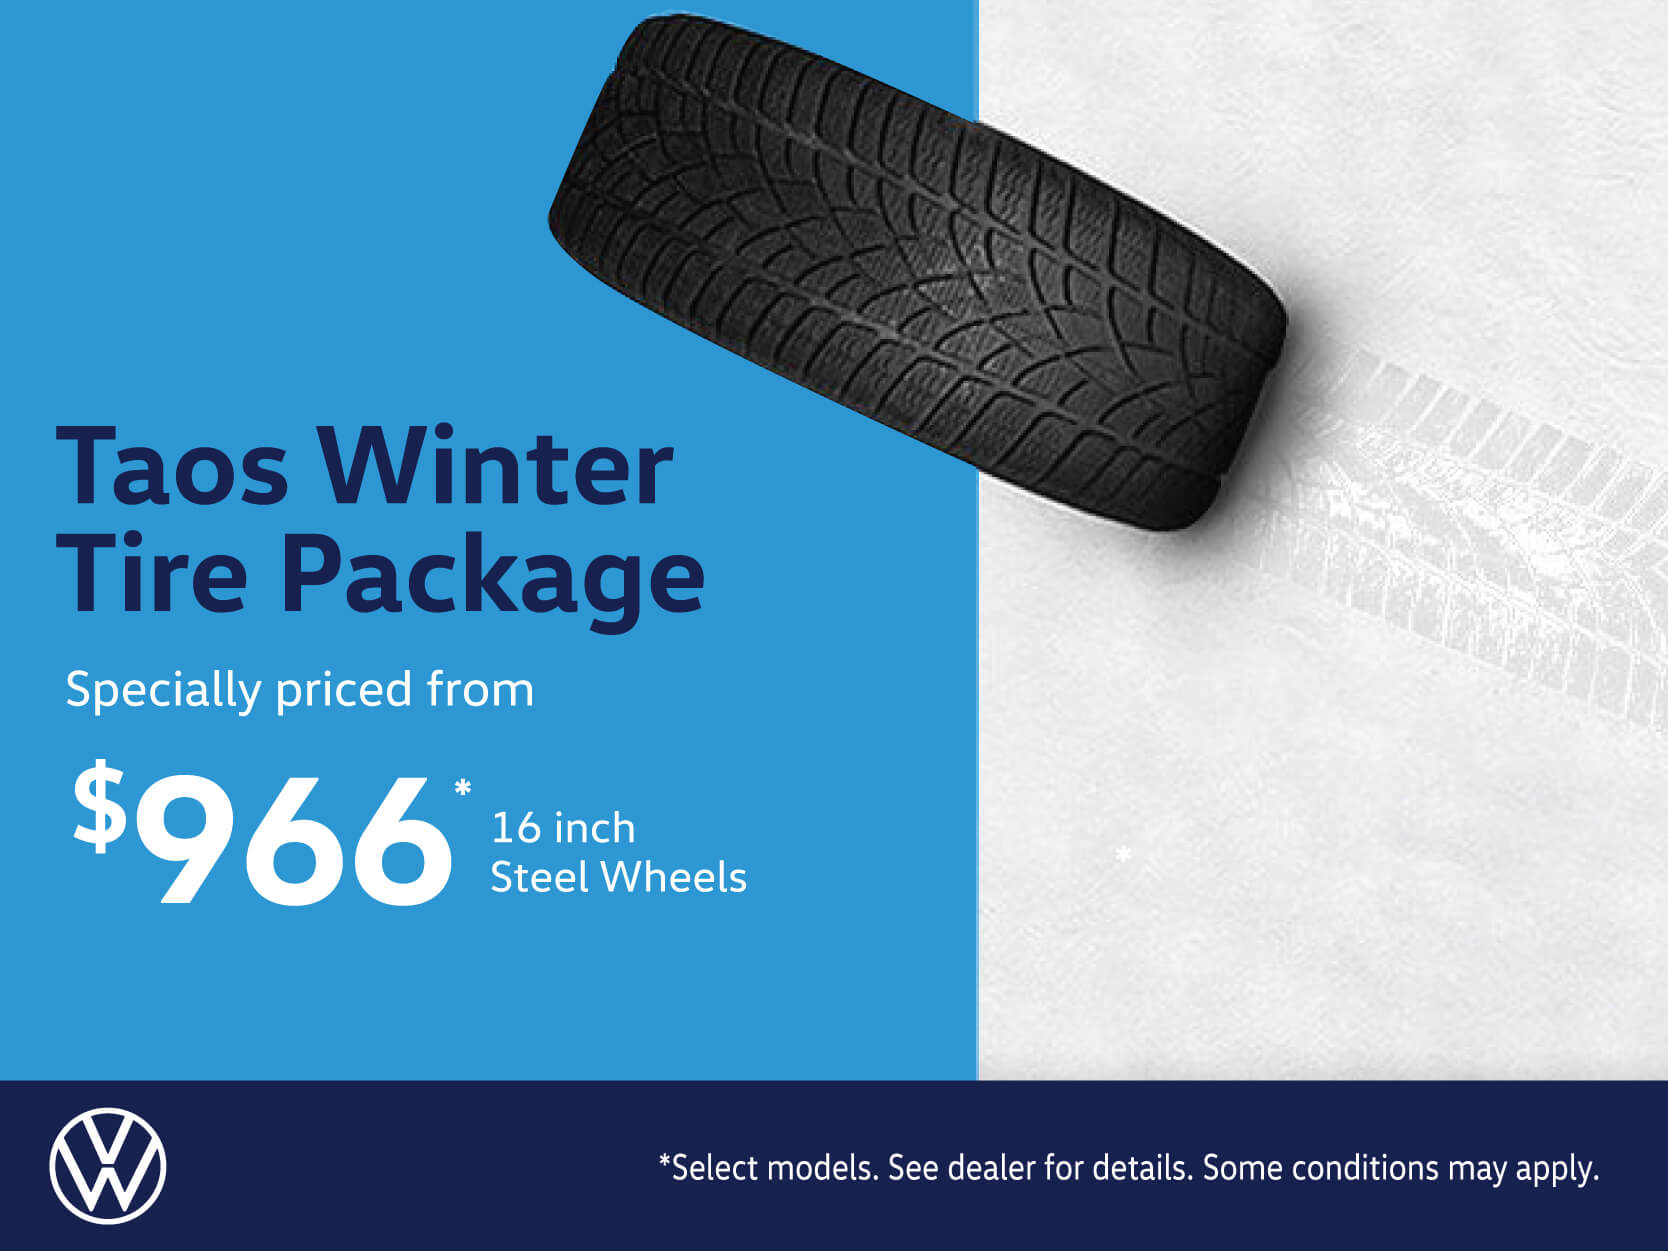 Taos Winter Tire Package